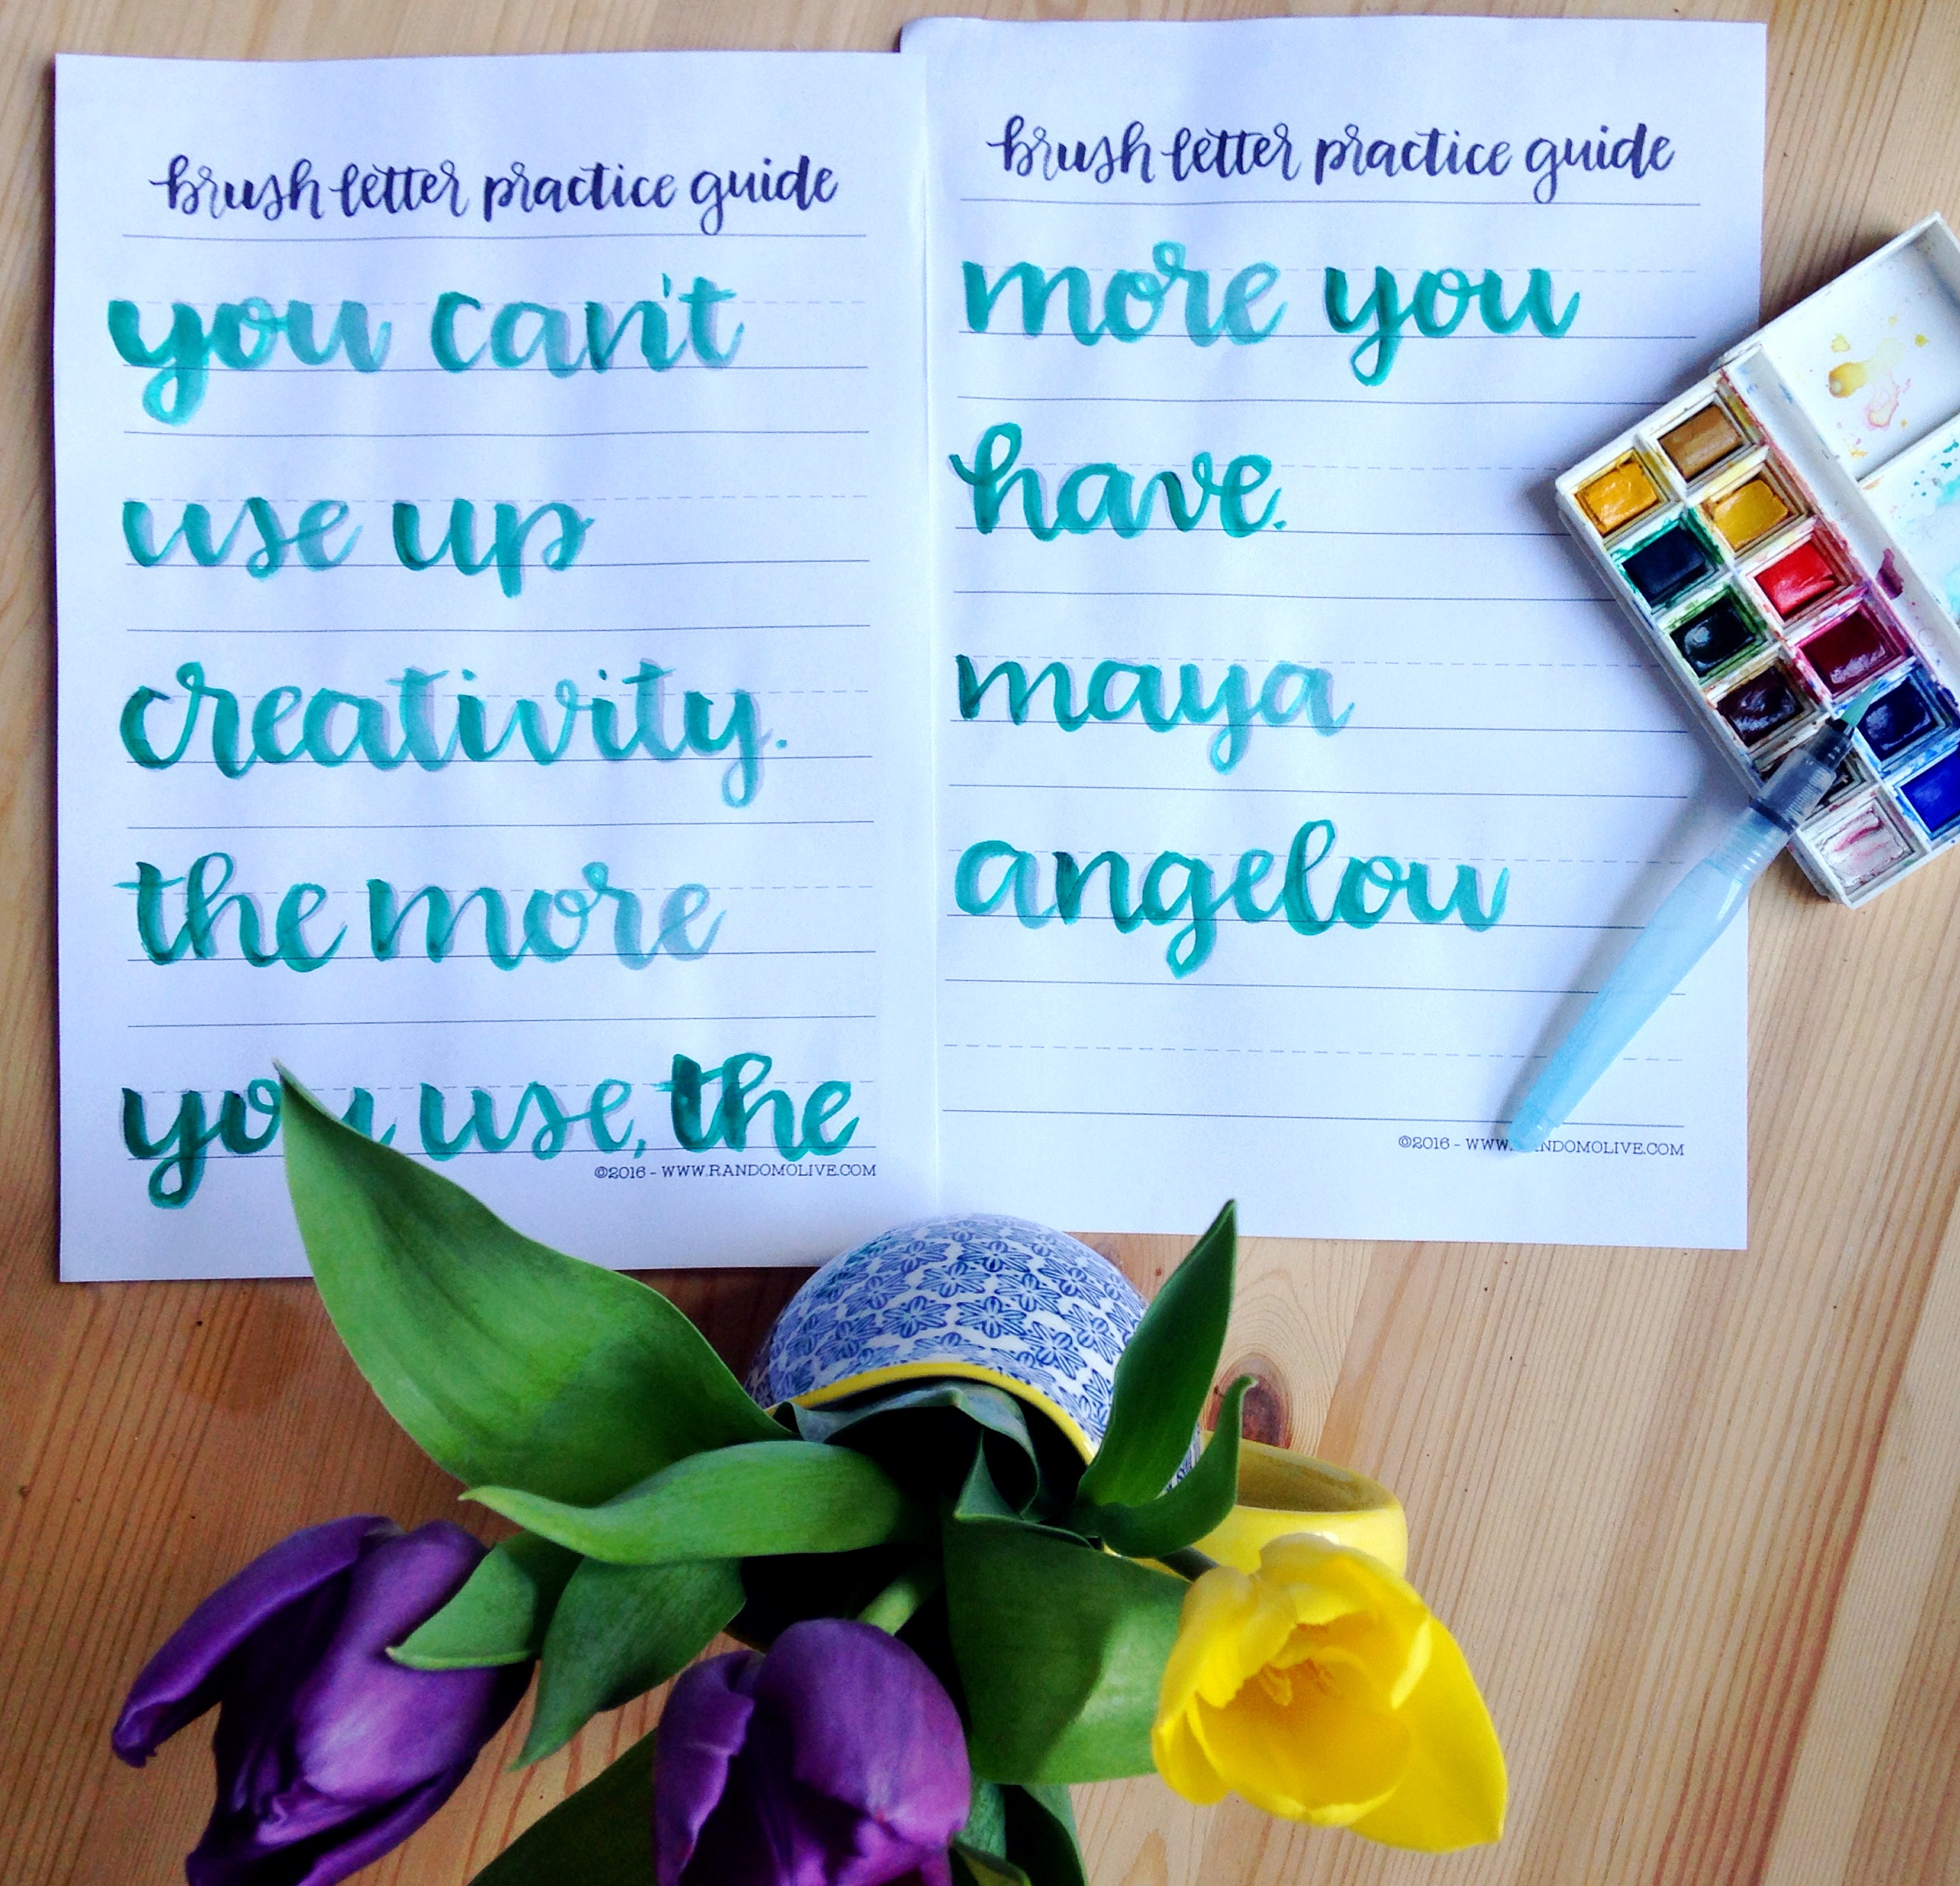 Maya angelou you cant use up creativity the more you use the more maya angelou you cant use up creativity the more you use the more you kristyandbryce Images